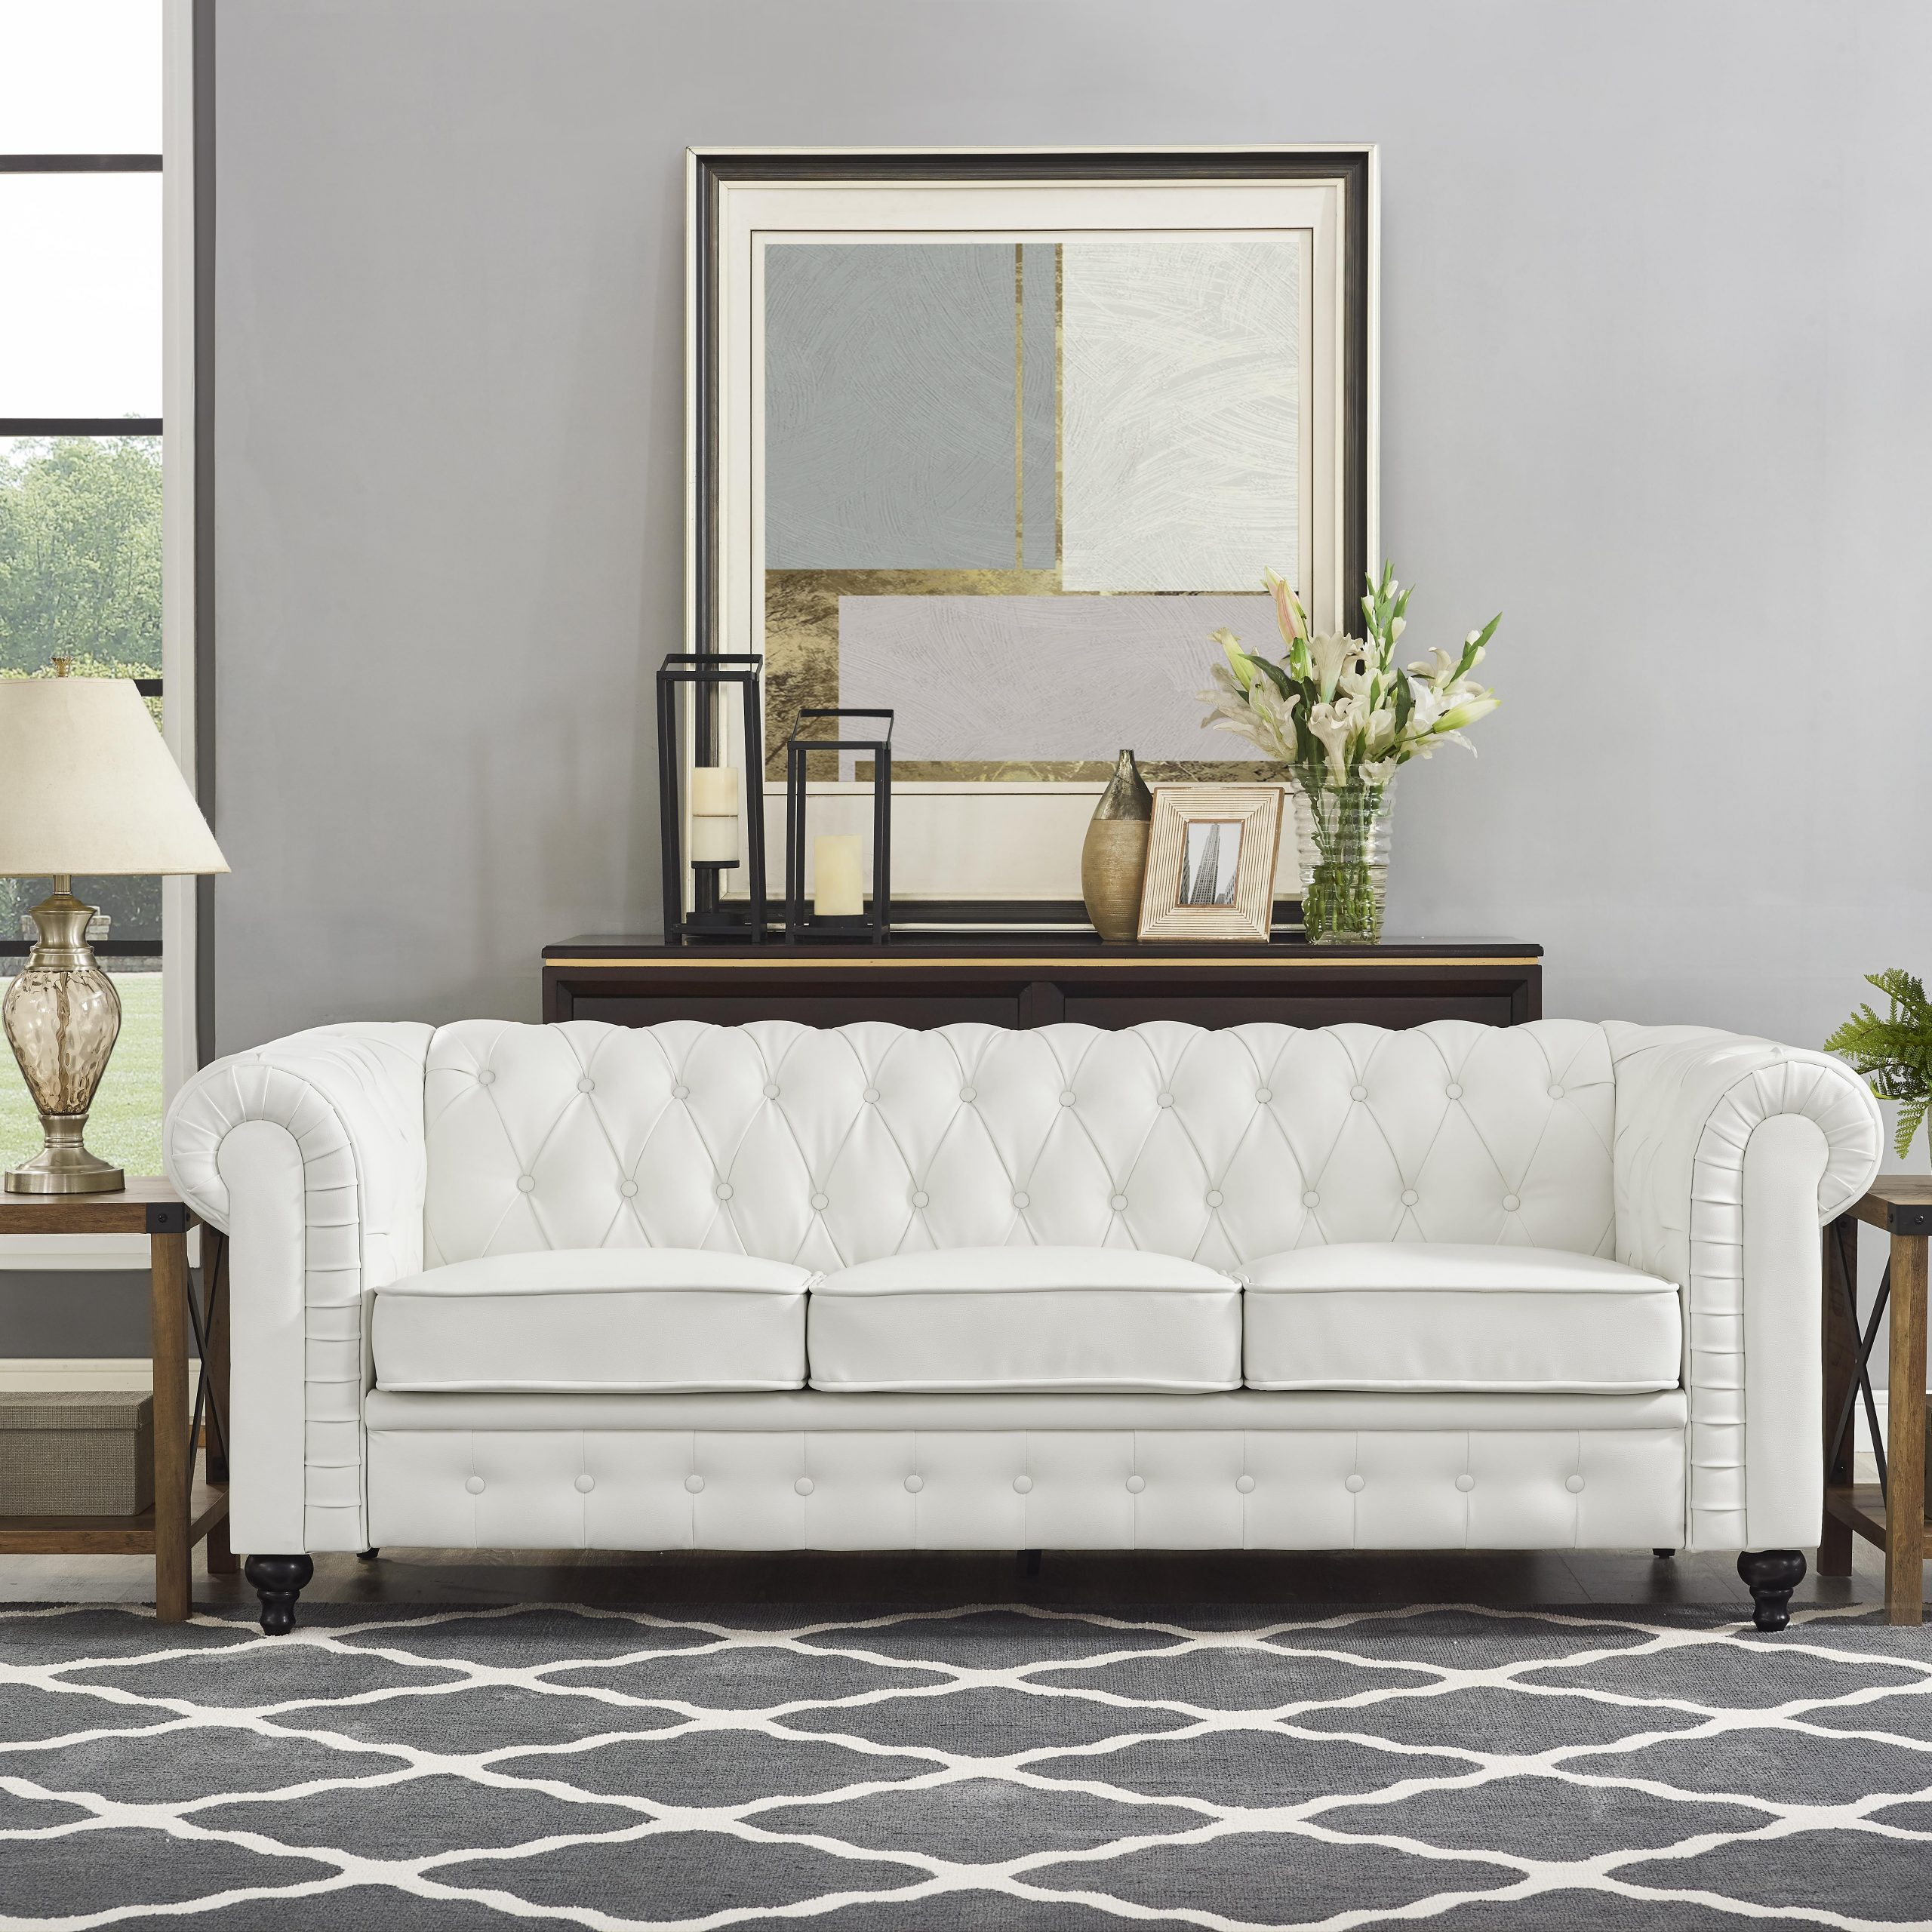 Naomi Home Emery Chesterfield Sofa & Accent Chair With Inside Chesterfield Sofas And Chairs (View 7 of 15)